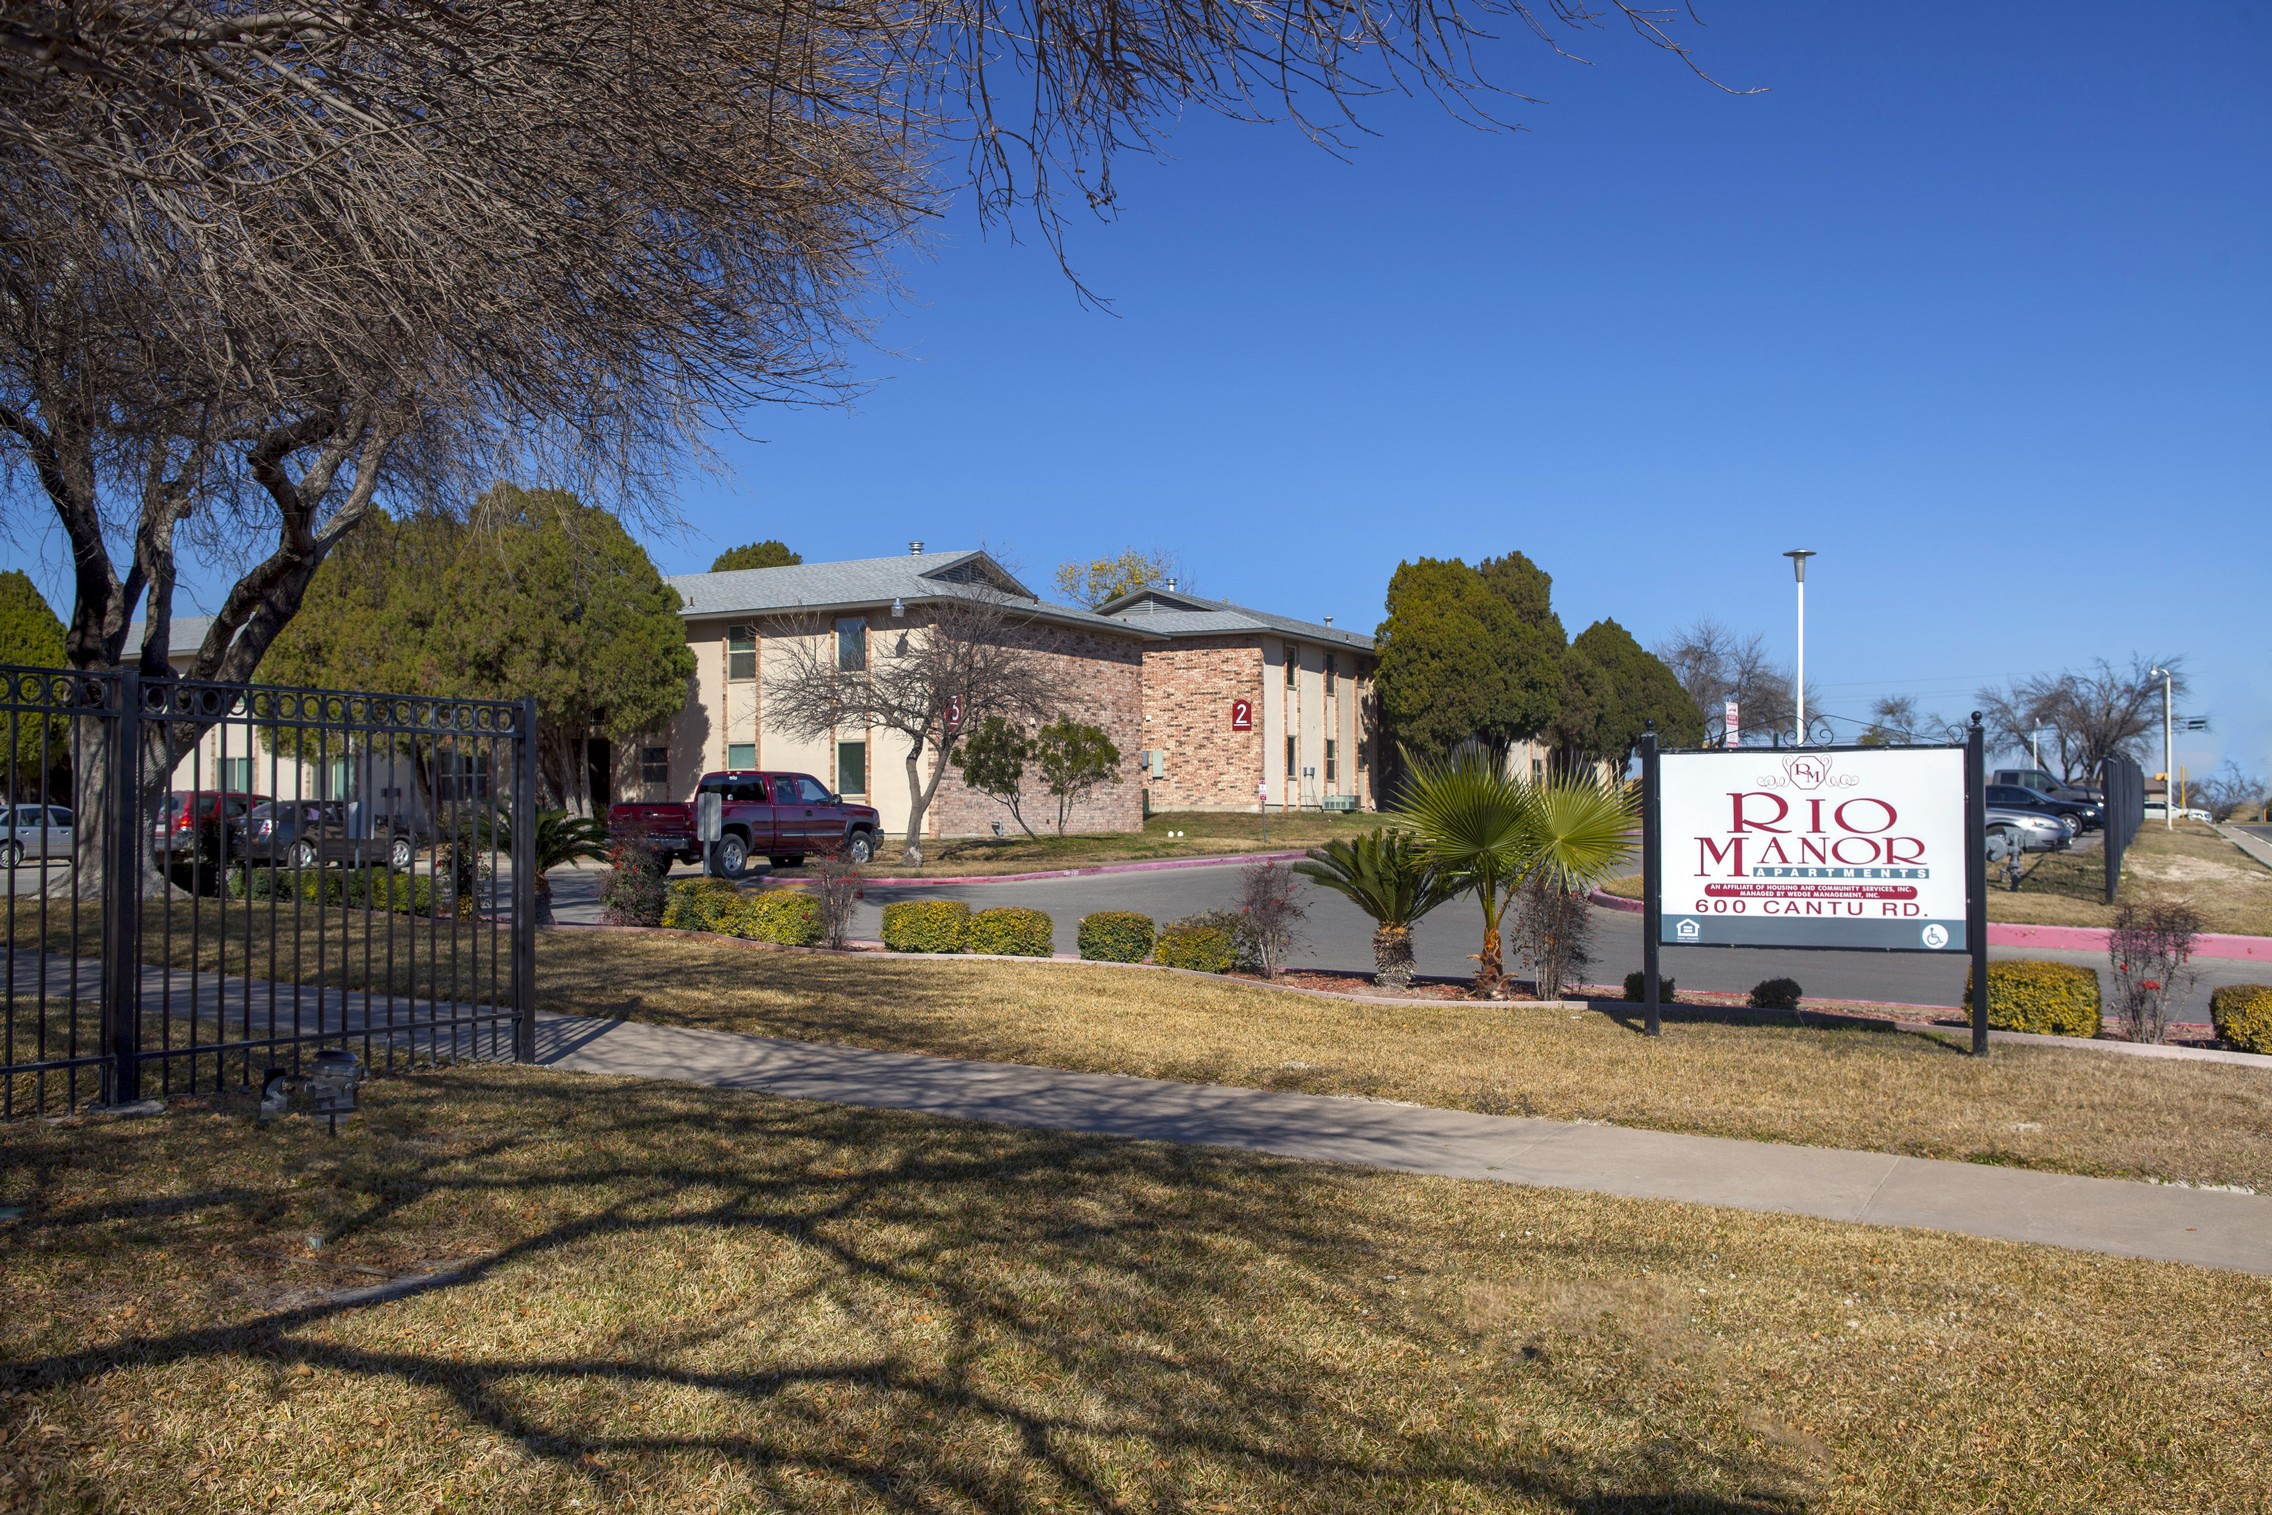 Rio Manor Apartments